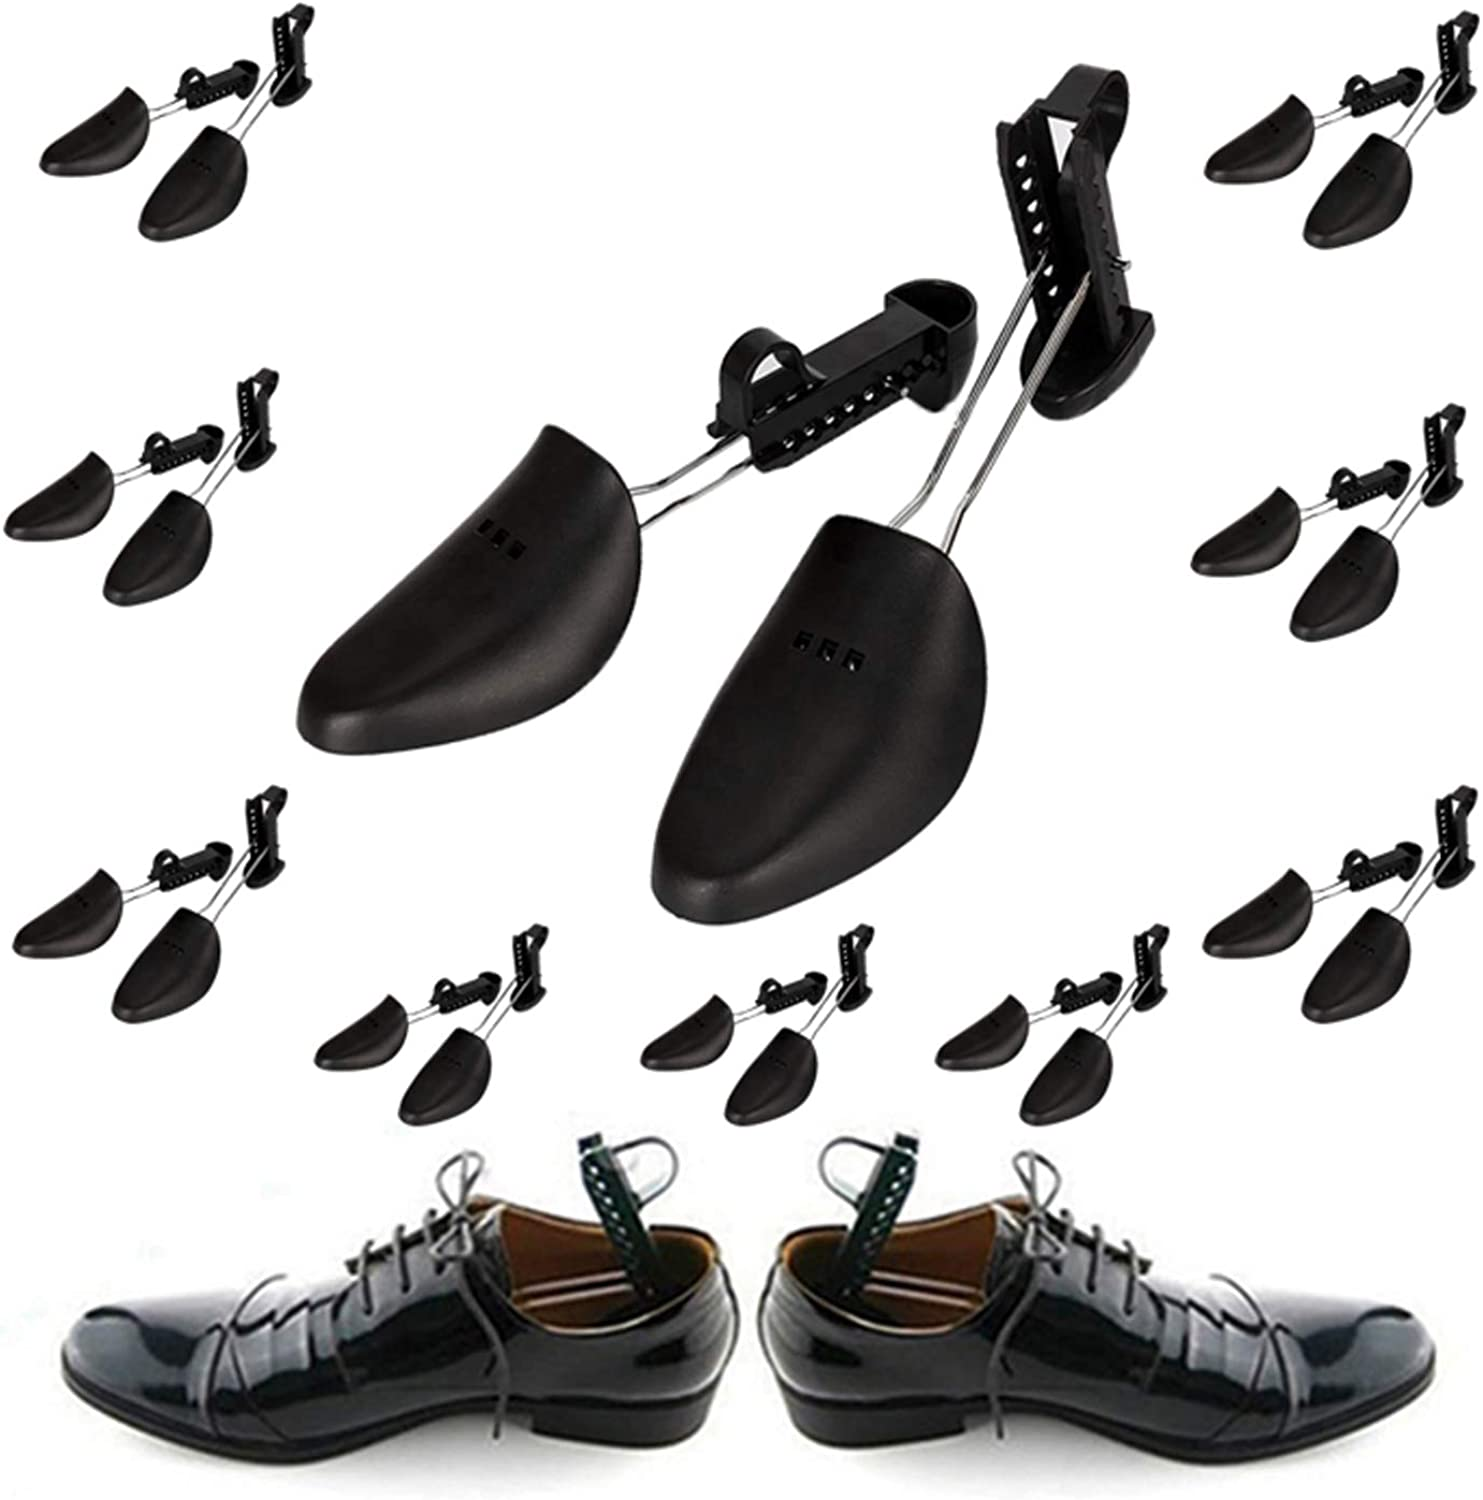 4 X Pairs Of Shoe Tree Trees Plastic Maintain Shape Shoes Footwear